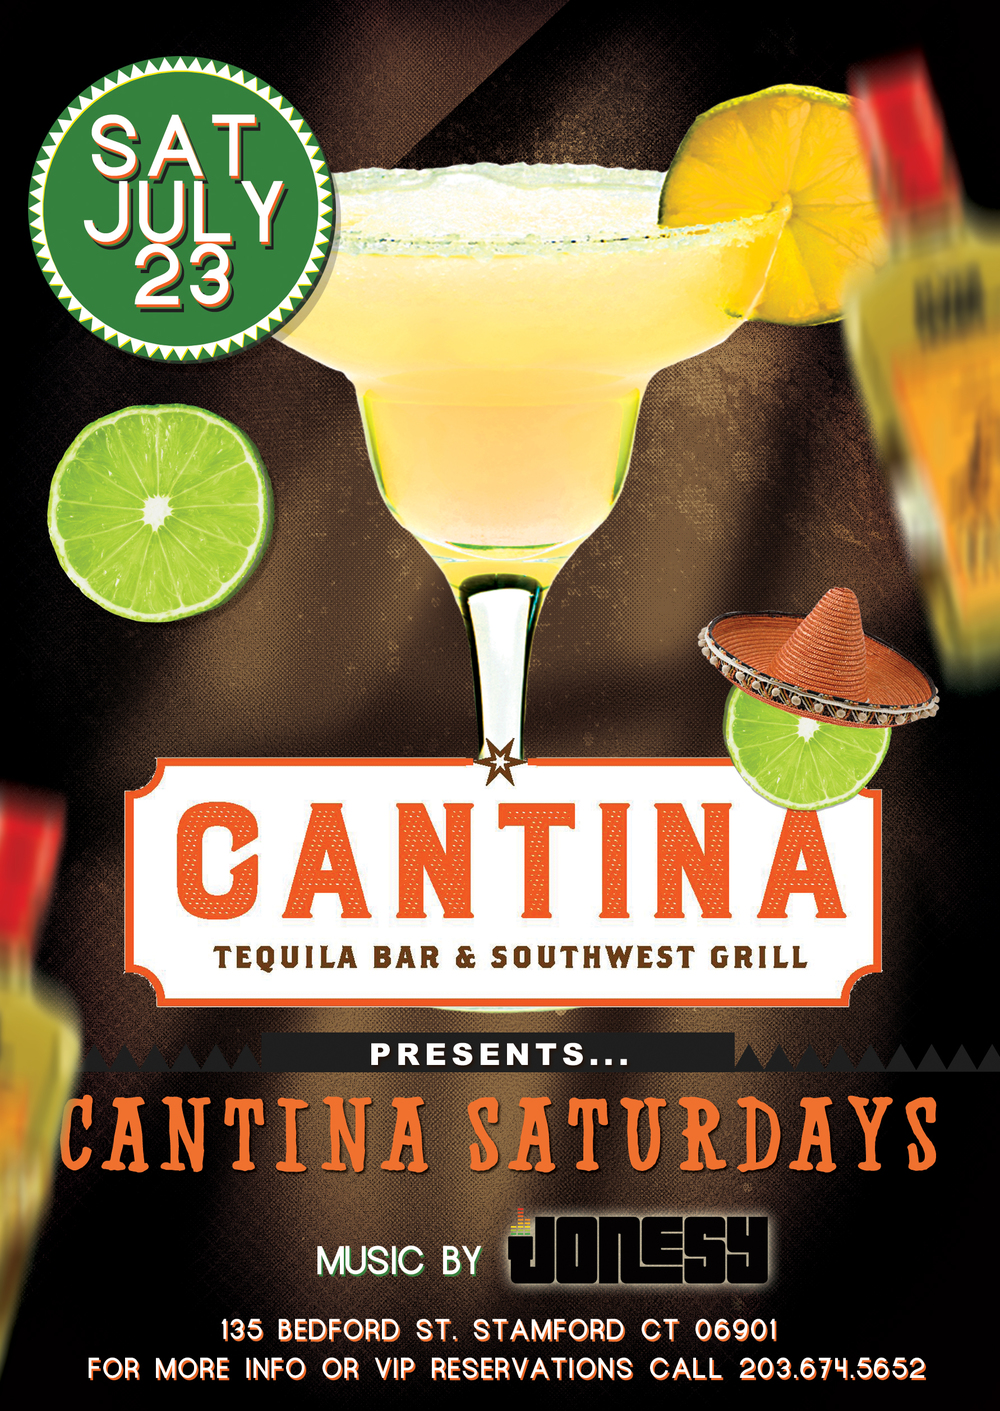 SATURDAY, JULY 23RD JOIN US AT CANTINA TEQUILA BAR & SOUTHWEST GRILL FOR CANTINA SATURDAYS!  MUSIC BY JONESY ALL NIGHT LONG!  HOPE TO SEE EVERYONE THERE!